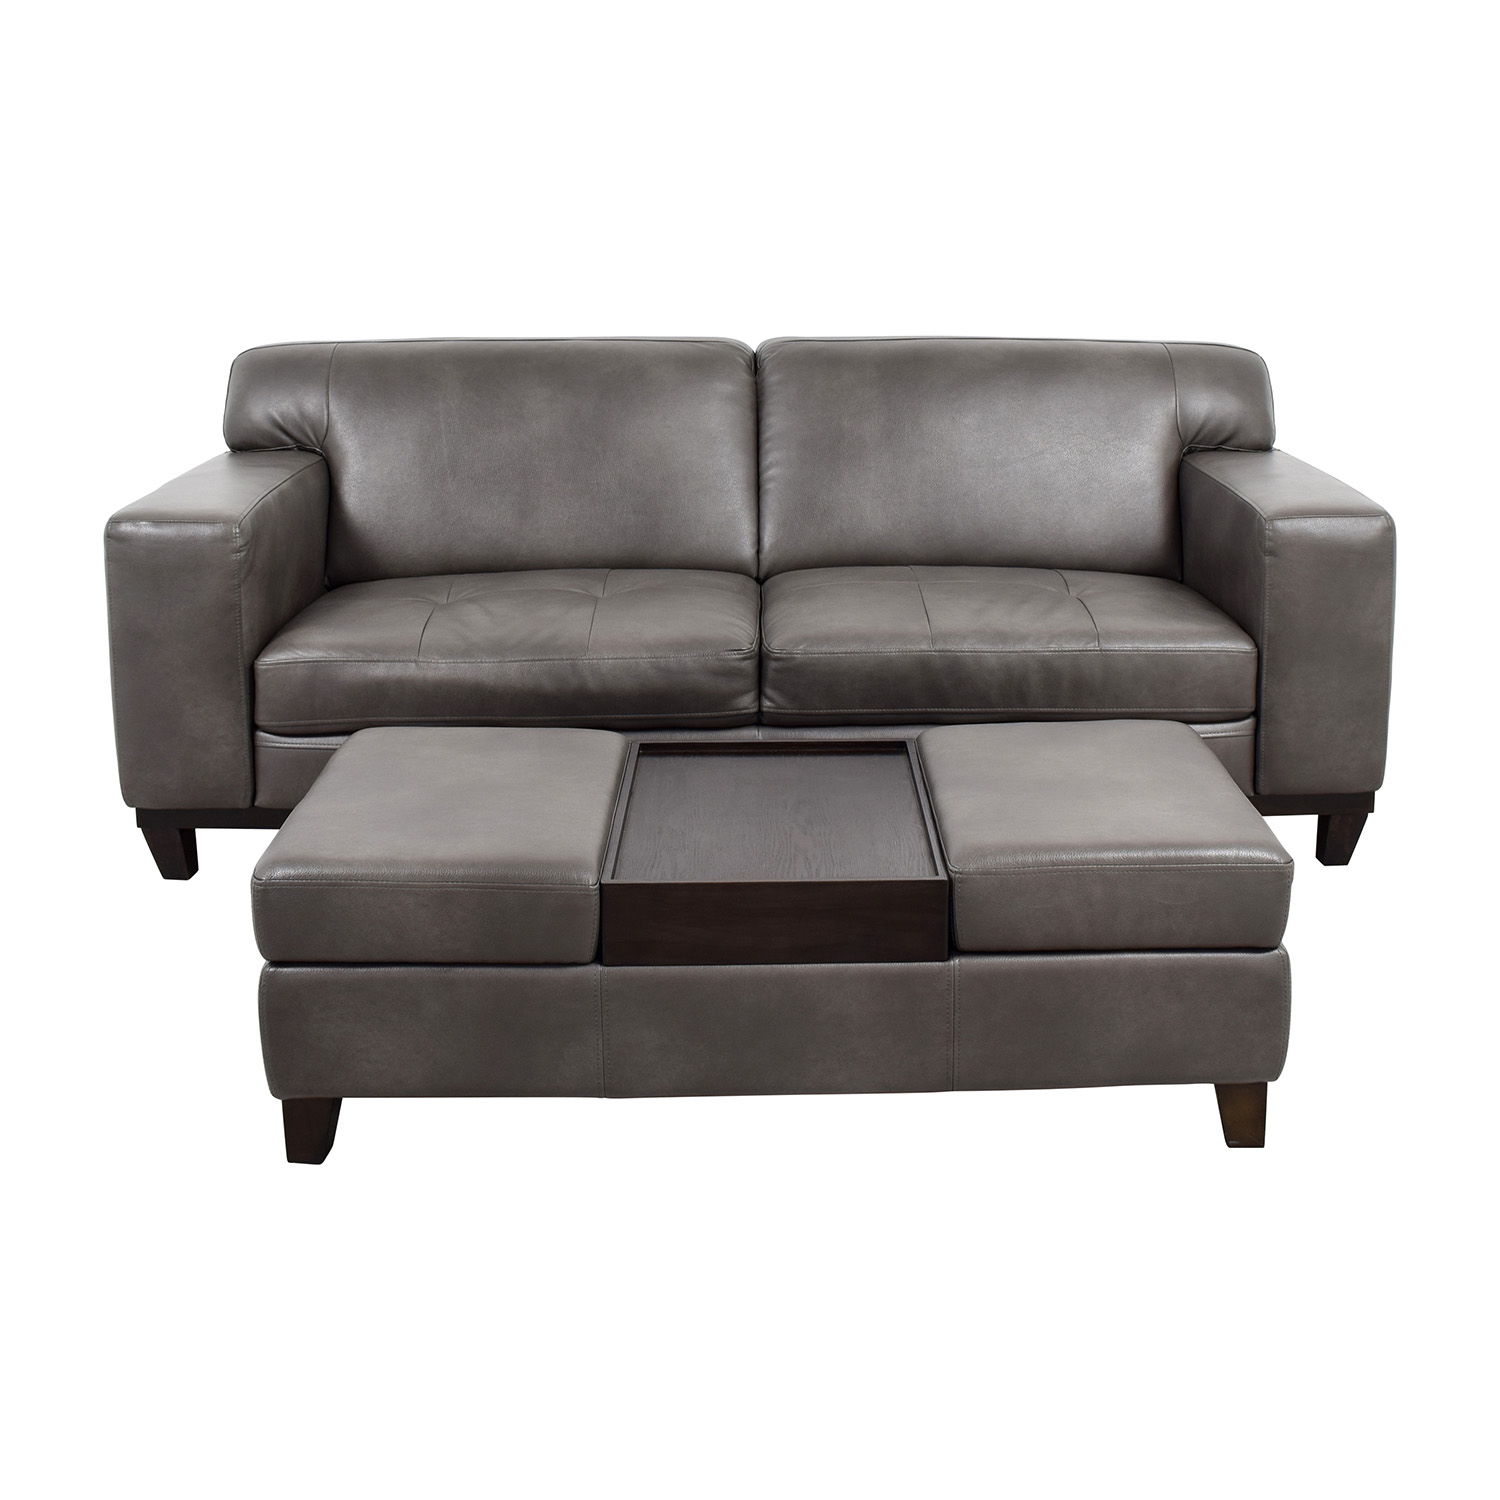 buy Raymour & Flanigan Grey Leather Couch with Storage Ottoman Raymour & Flanigan Sofas